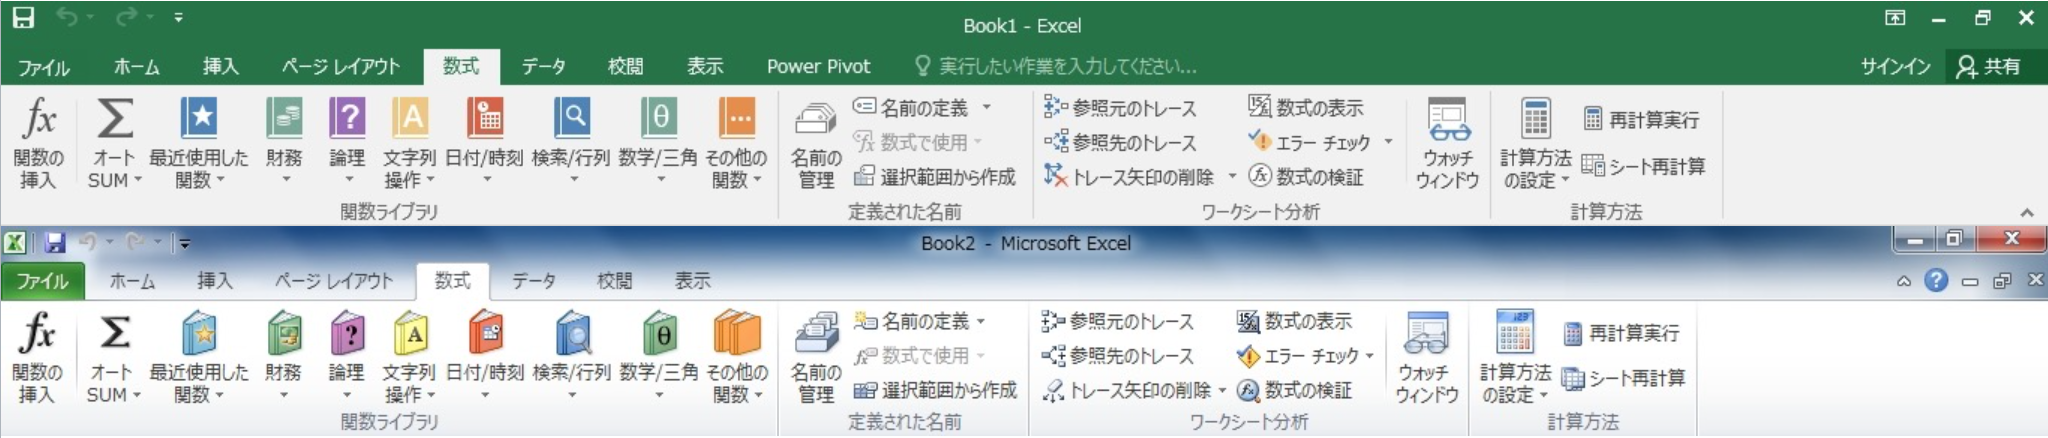 Excel2016とExcel2010の数式タブ